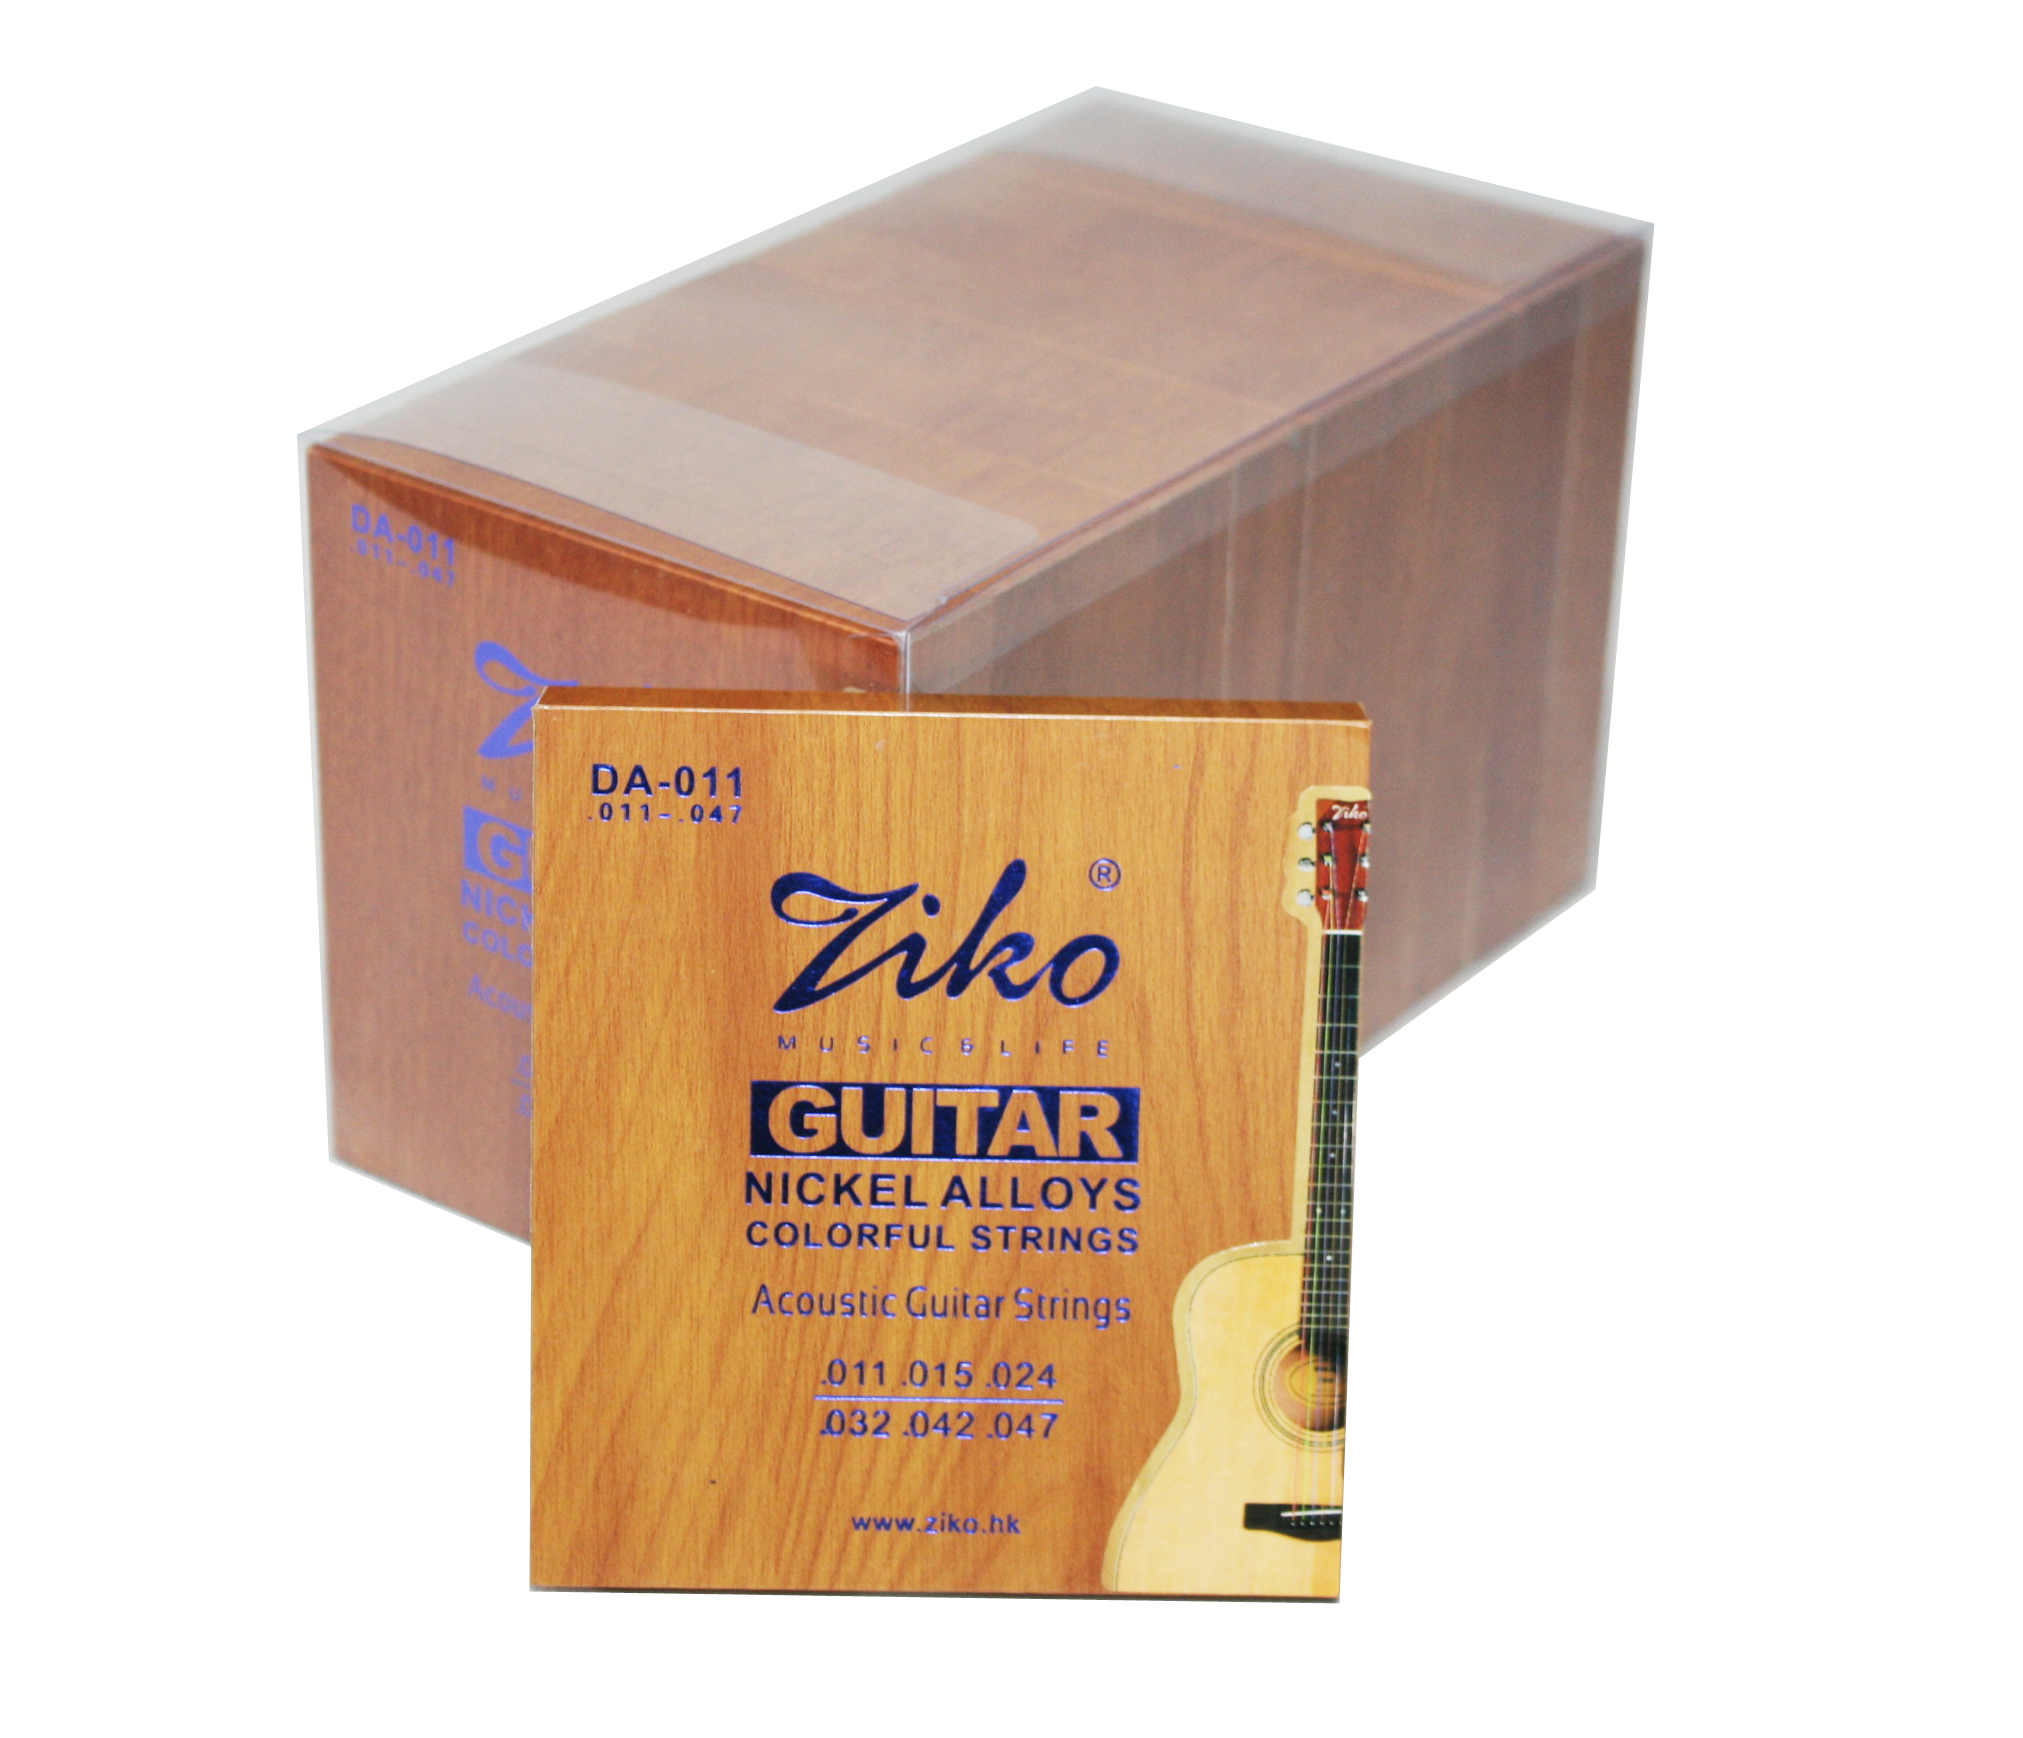 ziko color acoustic guitar strings DA-011/012